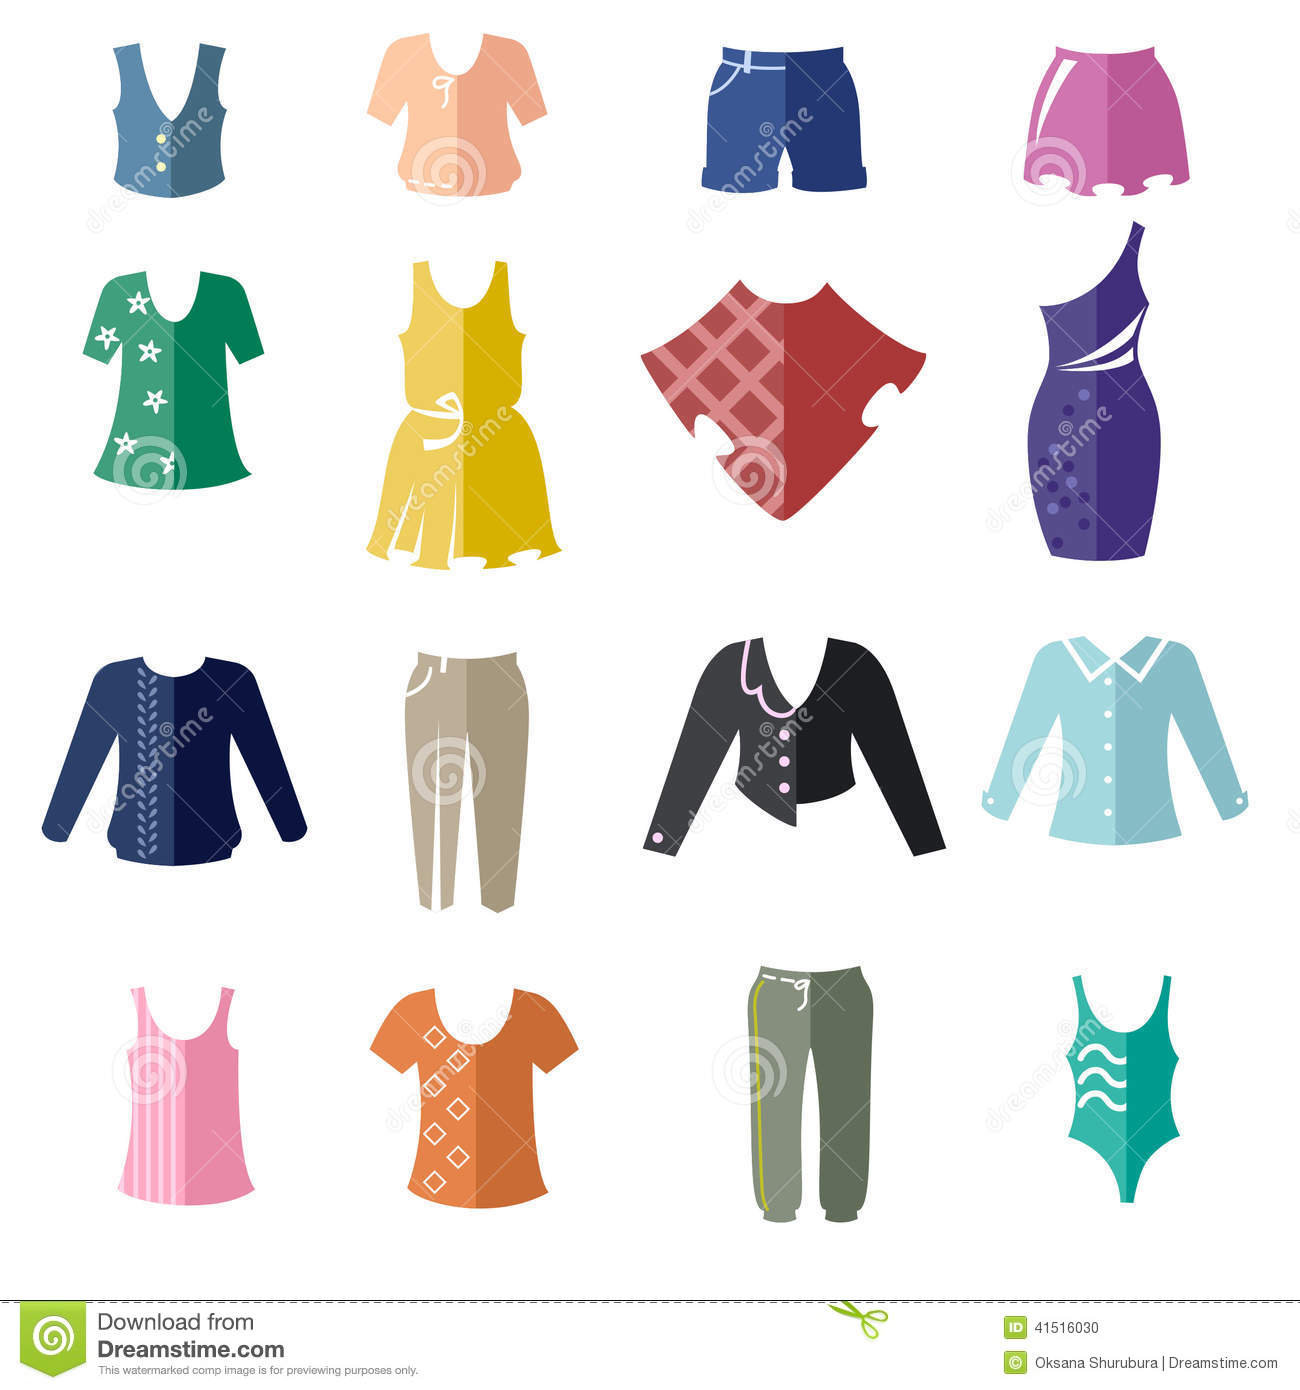 Types of clothes for women